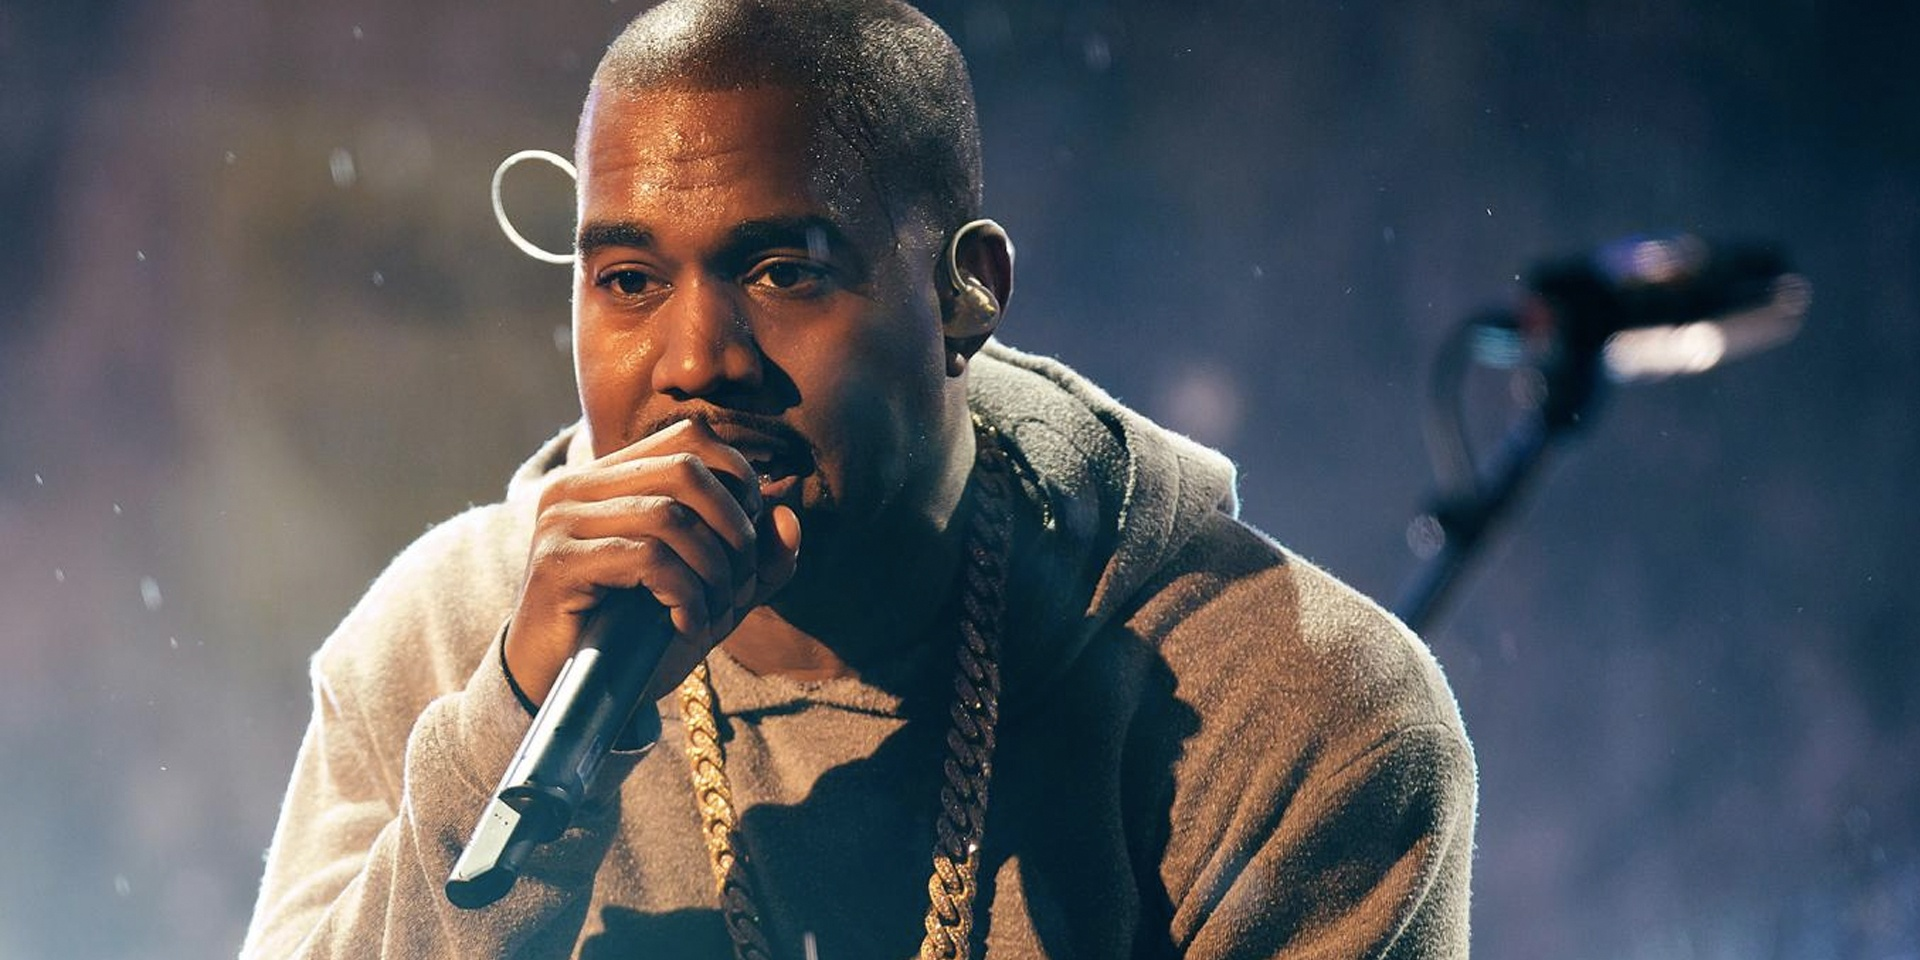 ALBUM REVIEW: Kanye West - The Life of Pablo